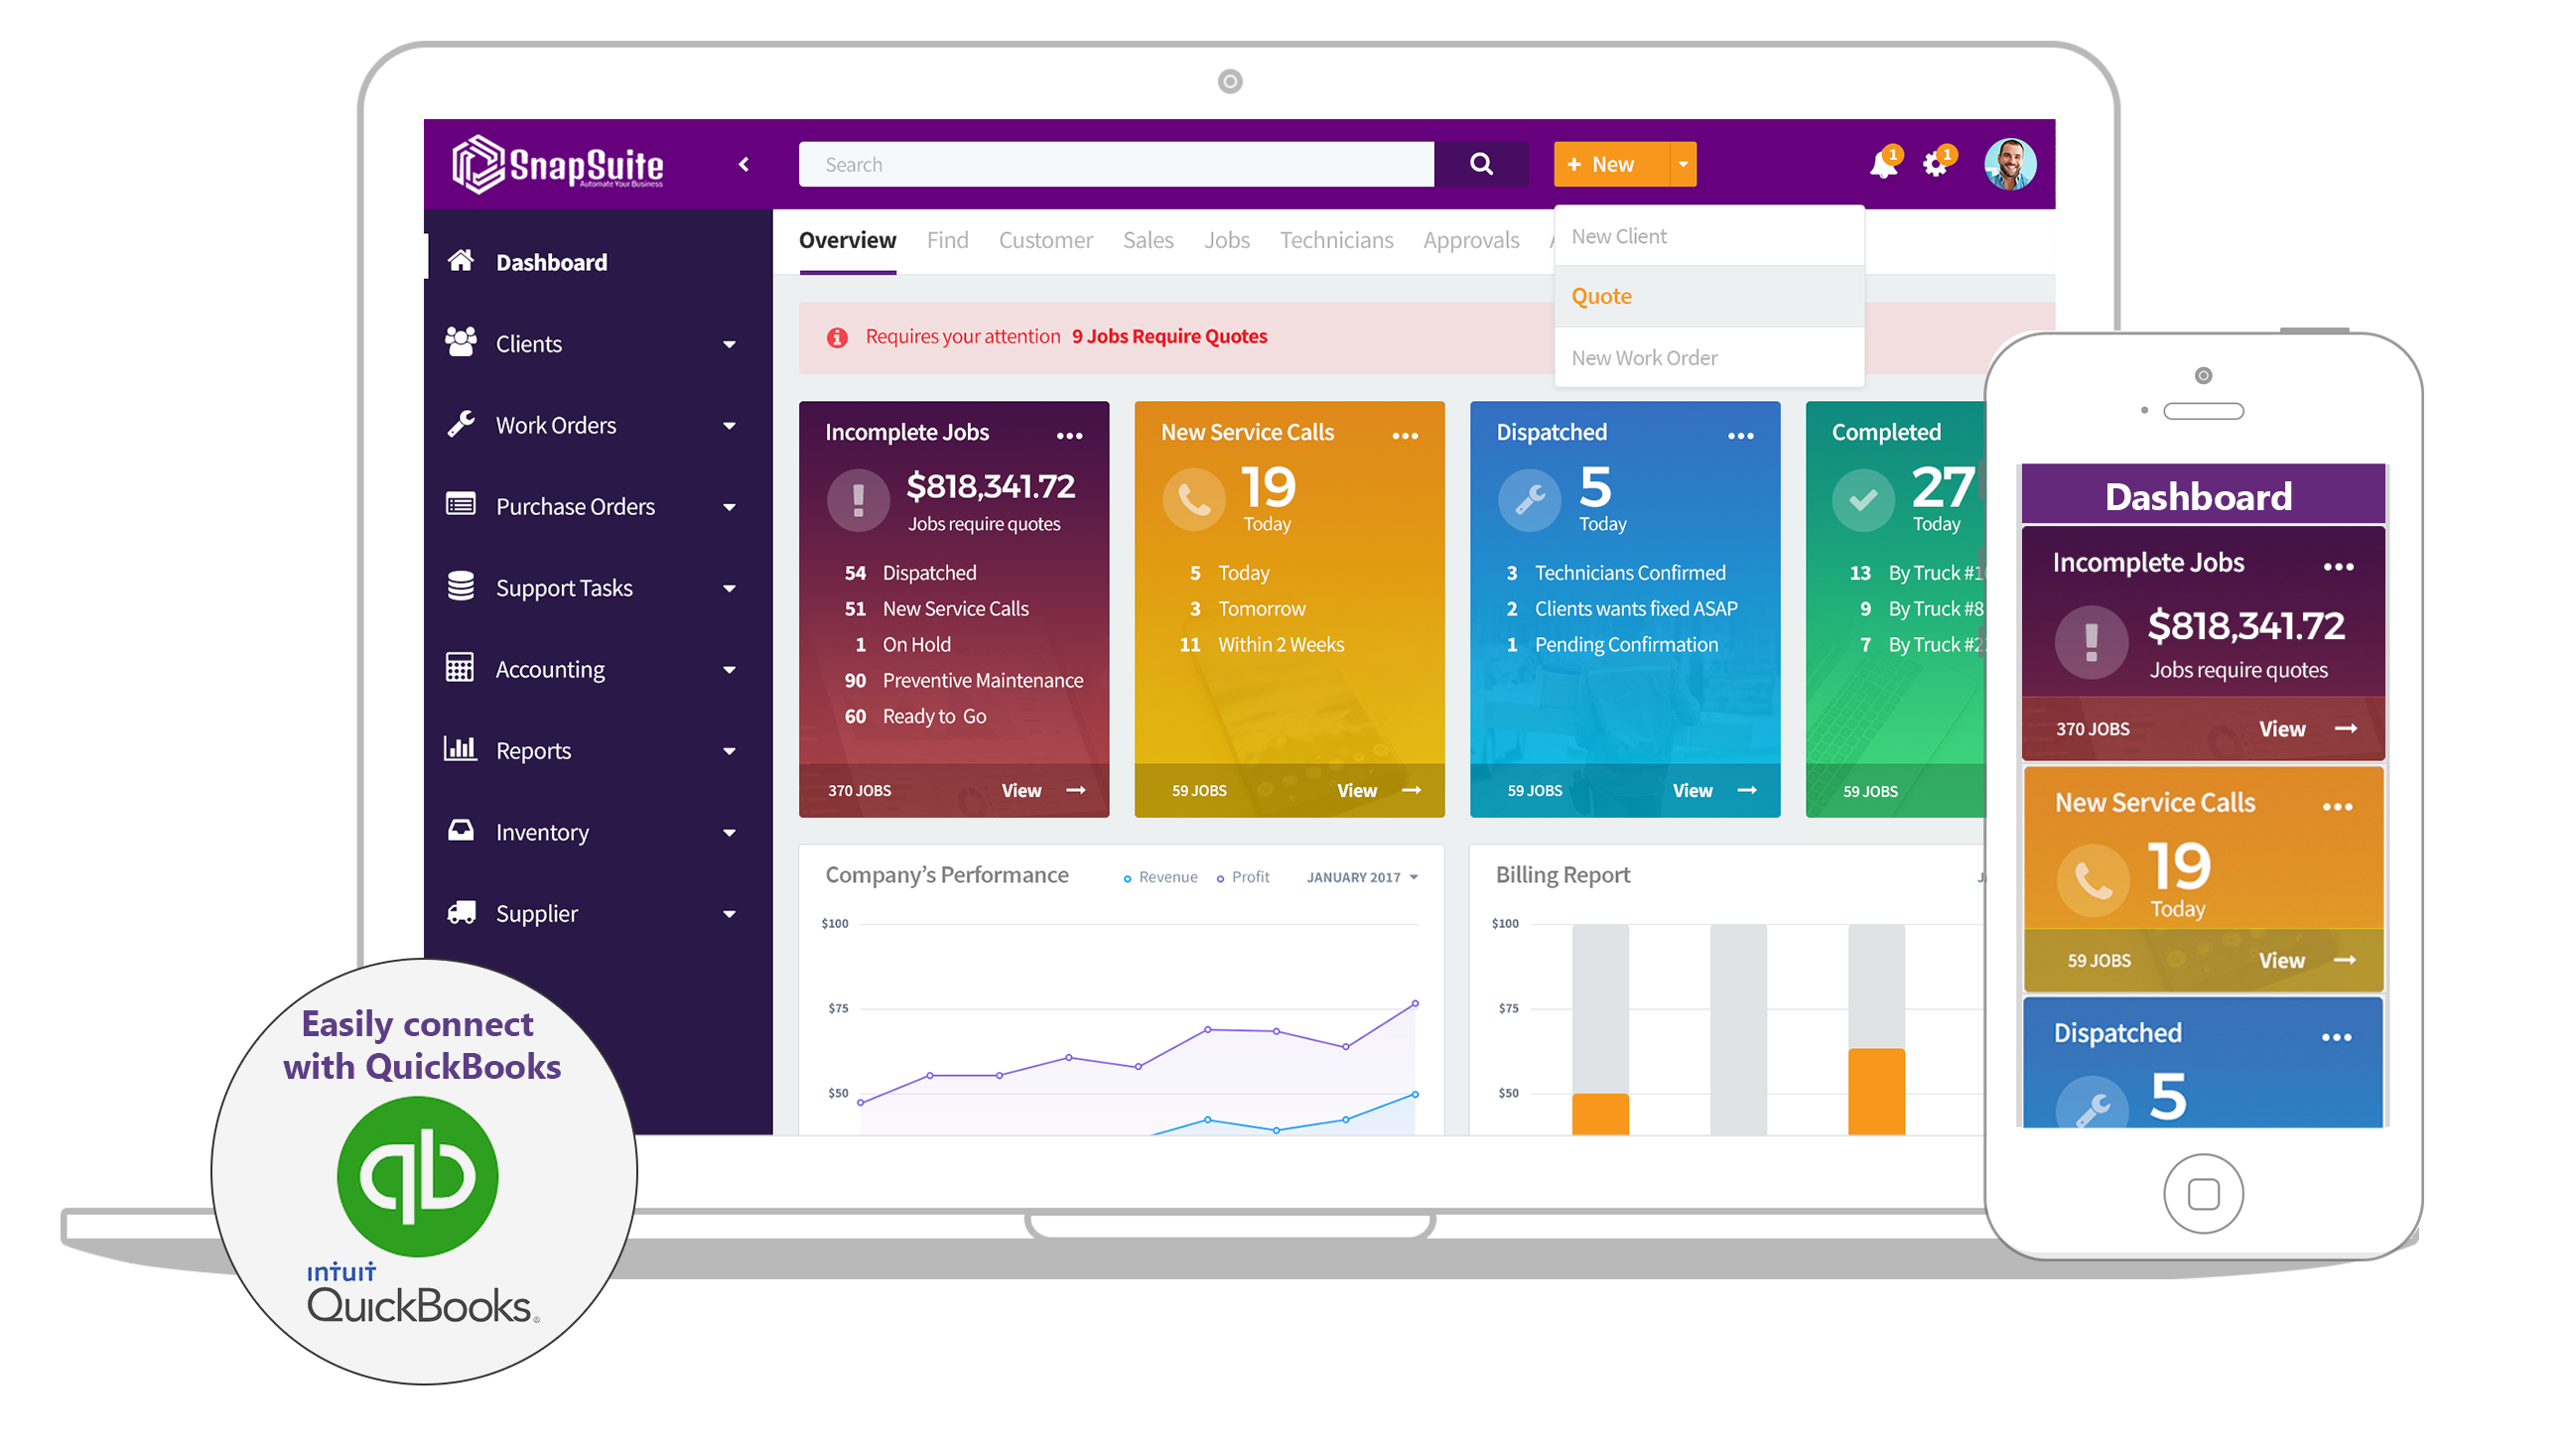 Snapsuite dashboard